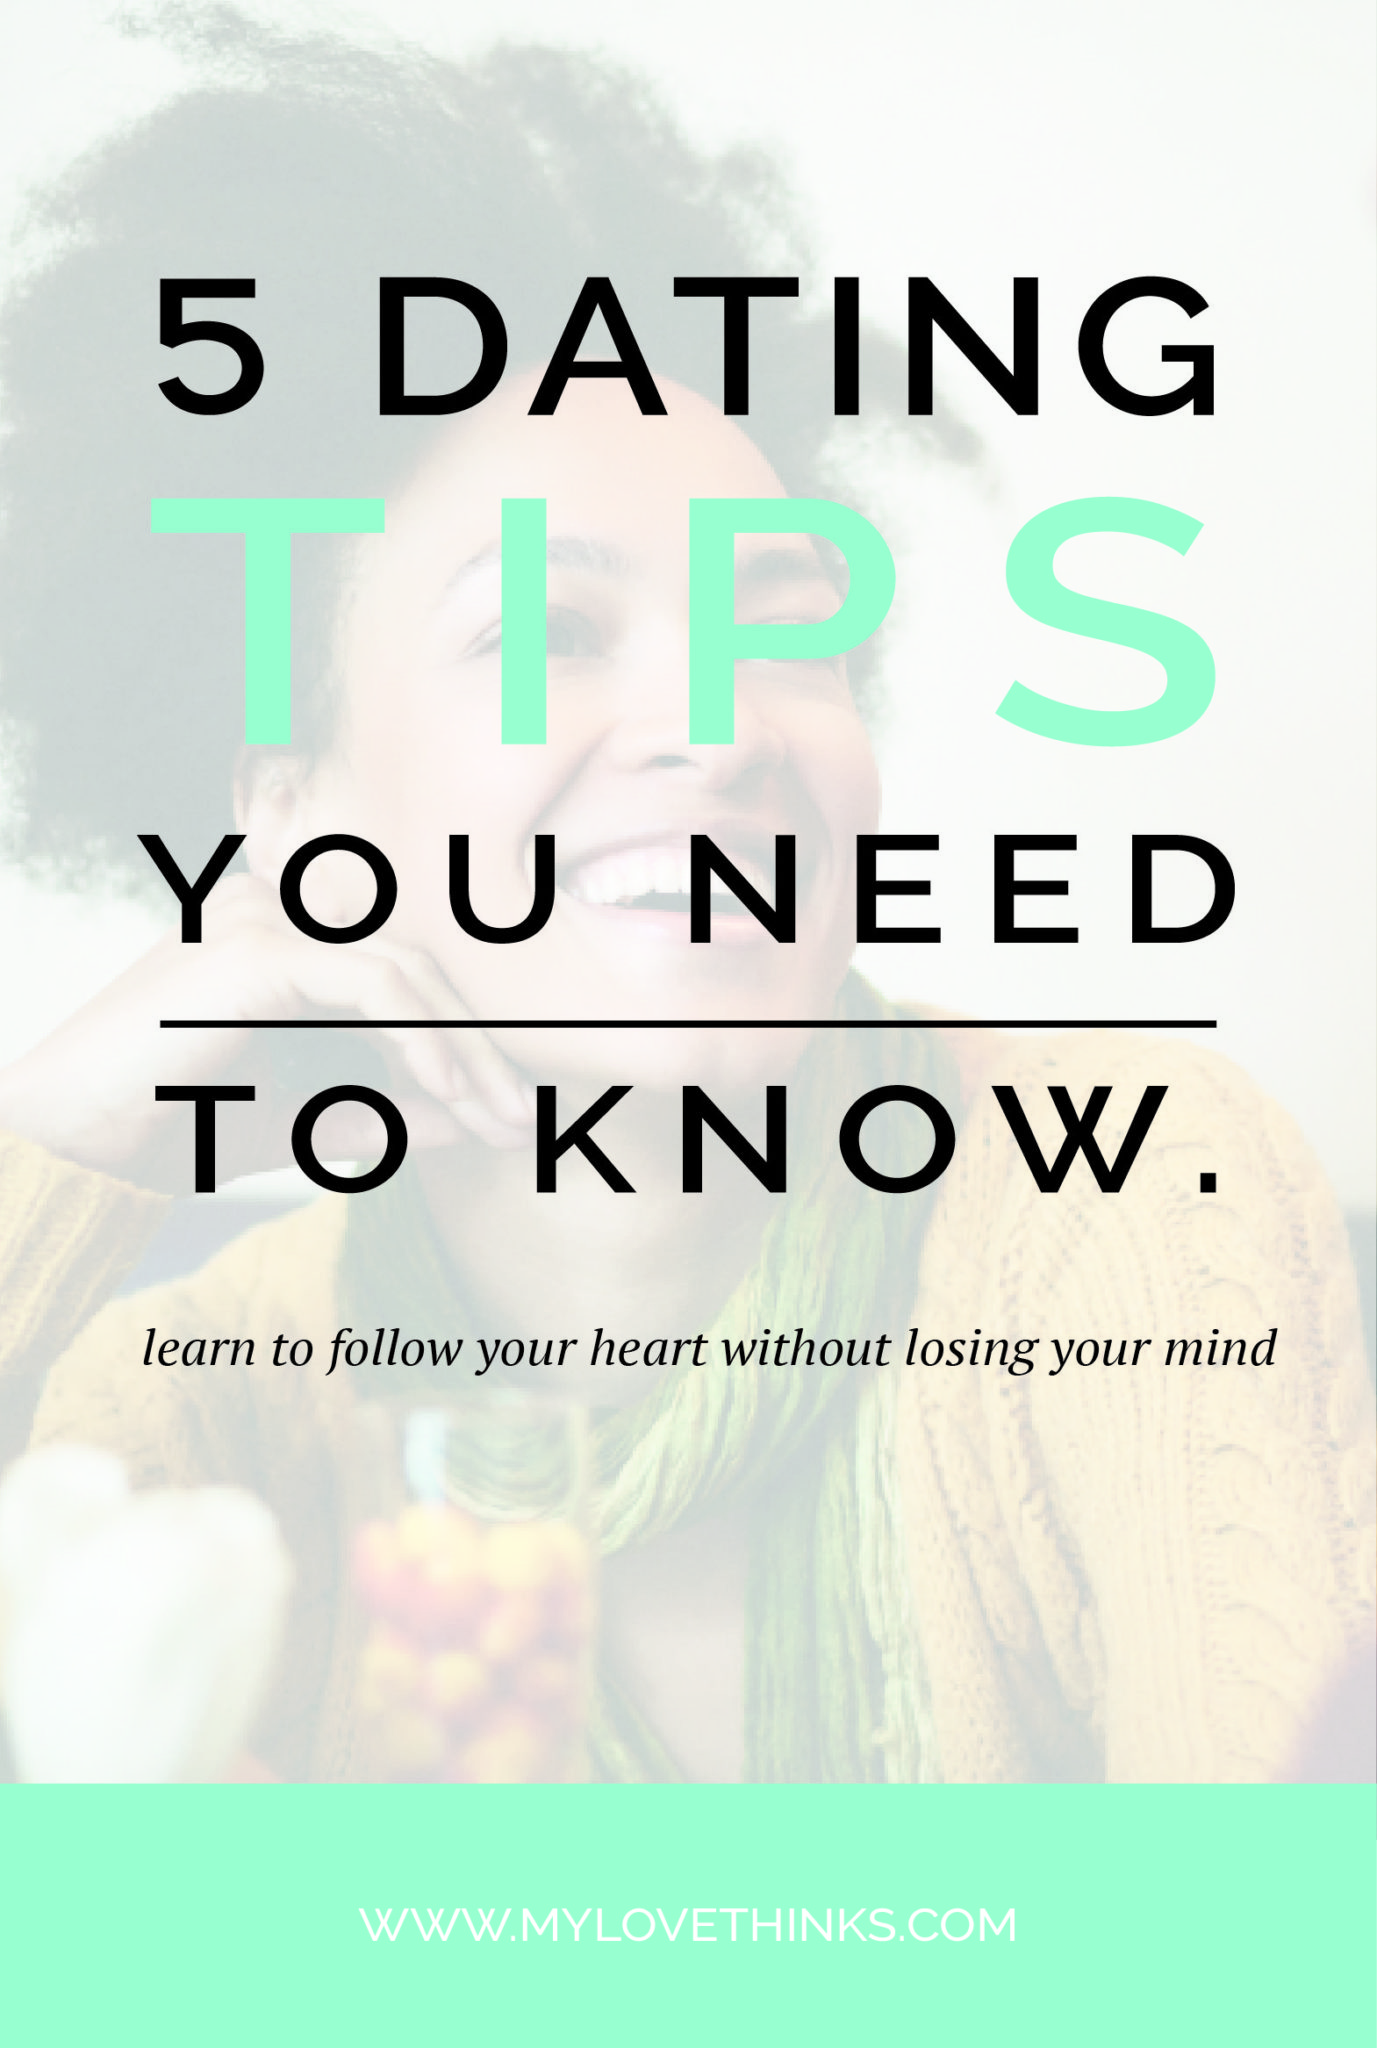 5 dating tips you need to know